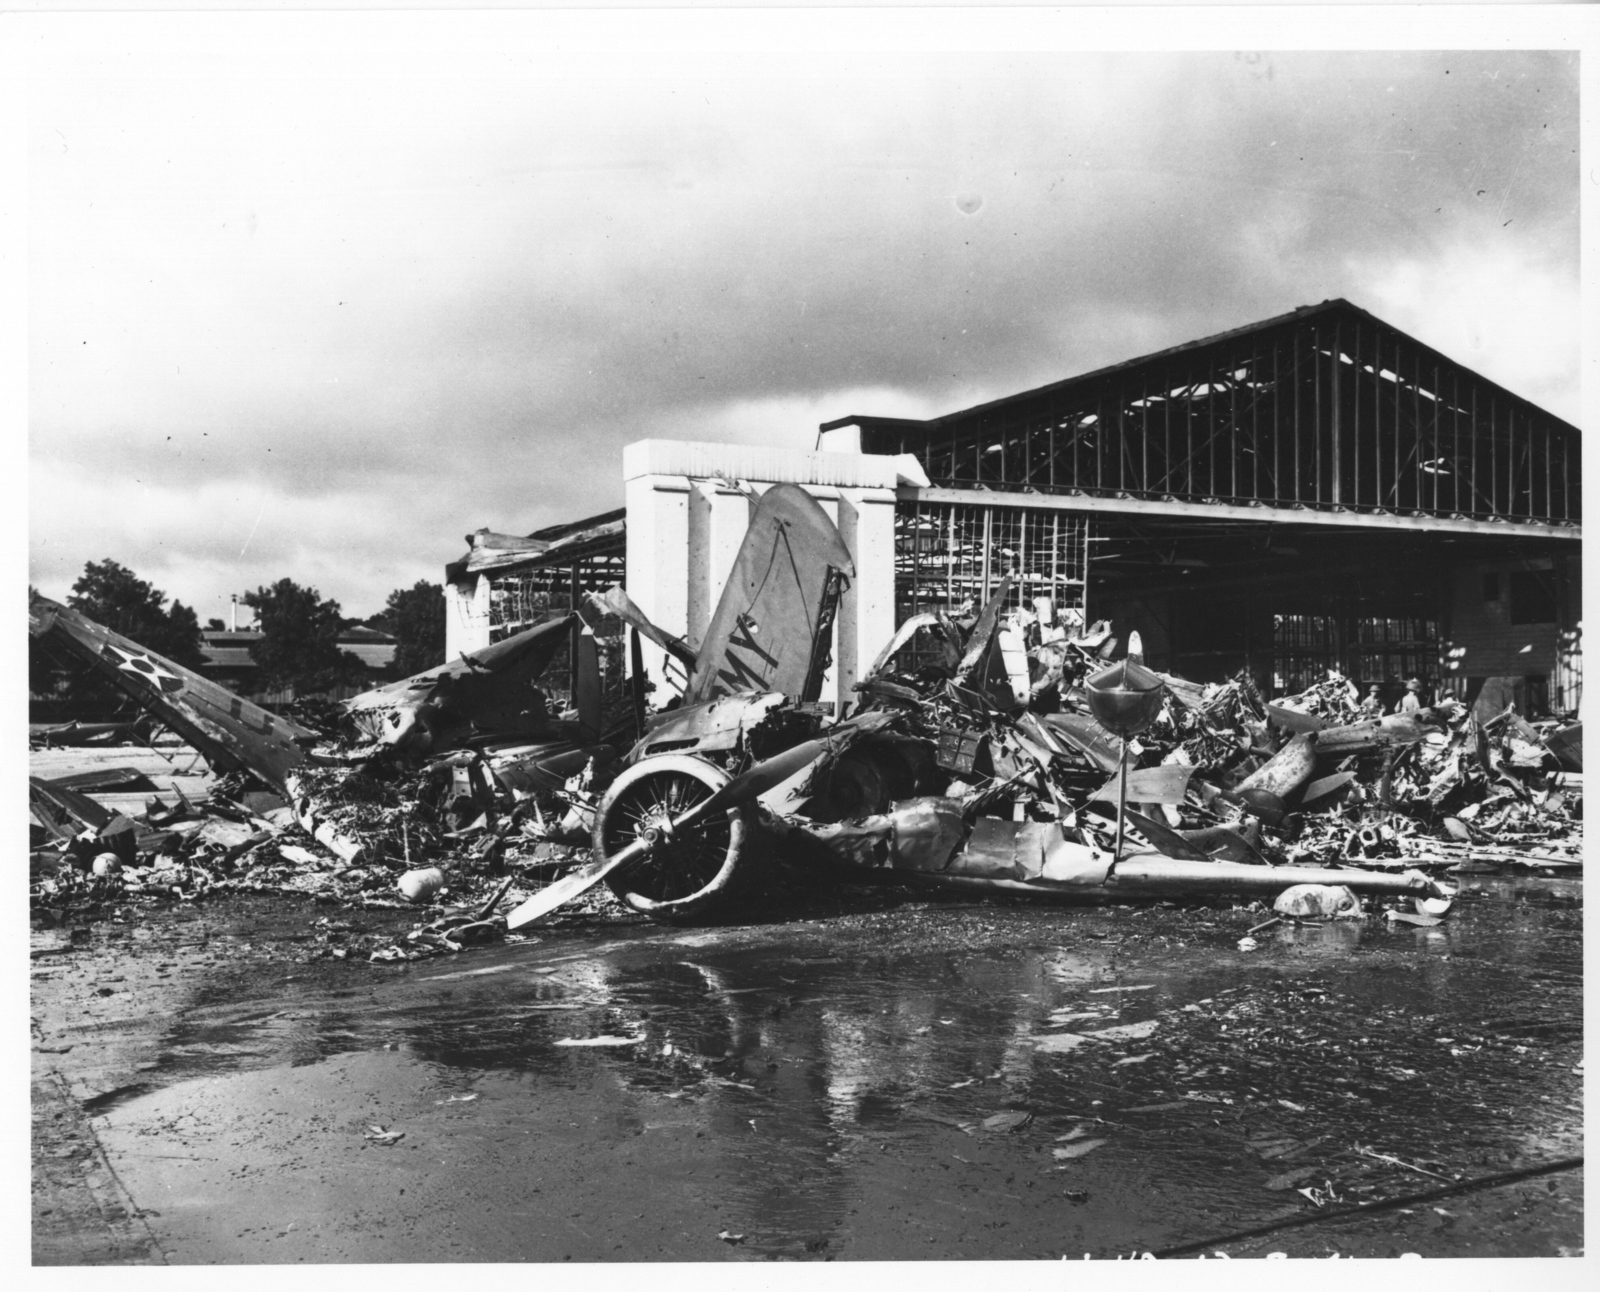 Photograph of U.S. Aircraft Destroyed as a Result of the Japanese Bombing on Pearl Harbor